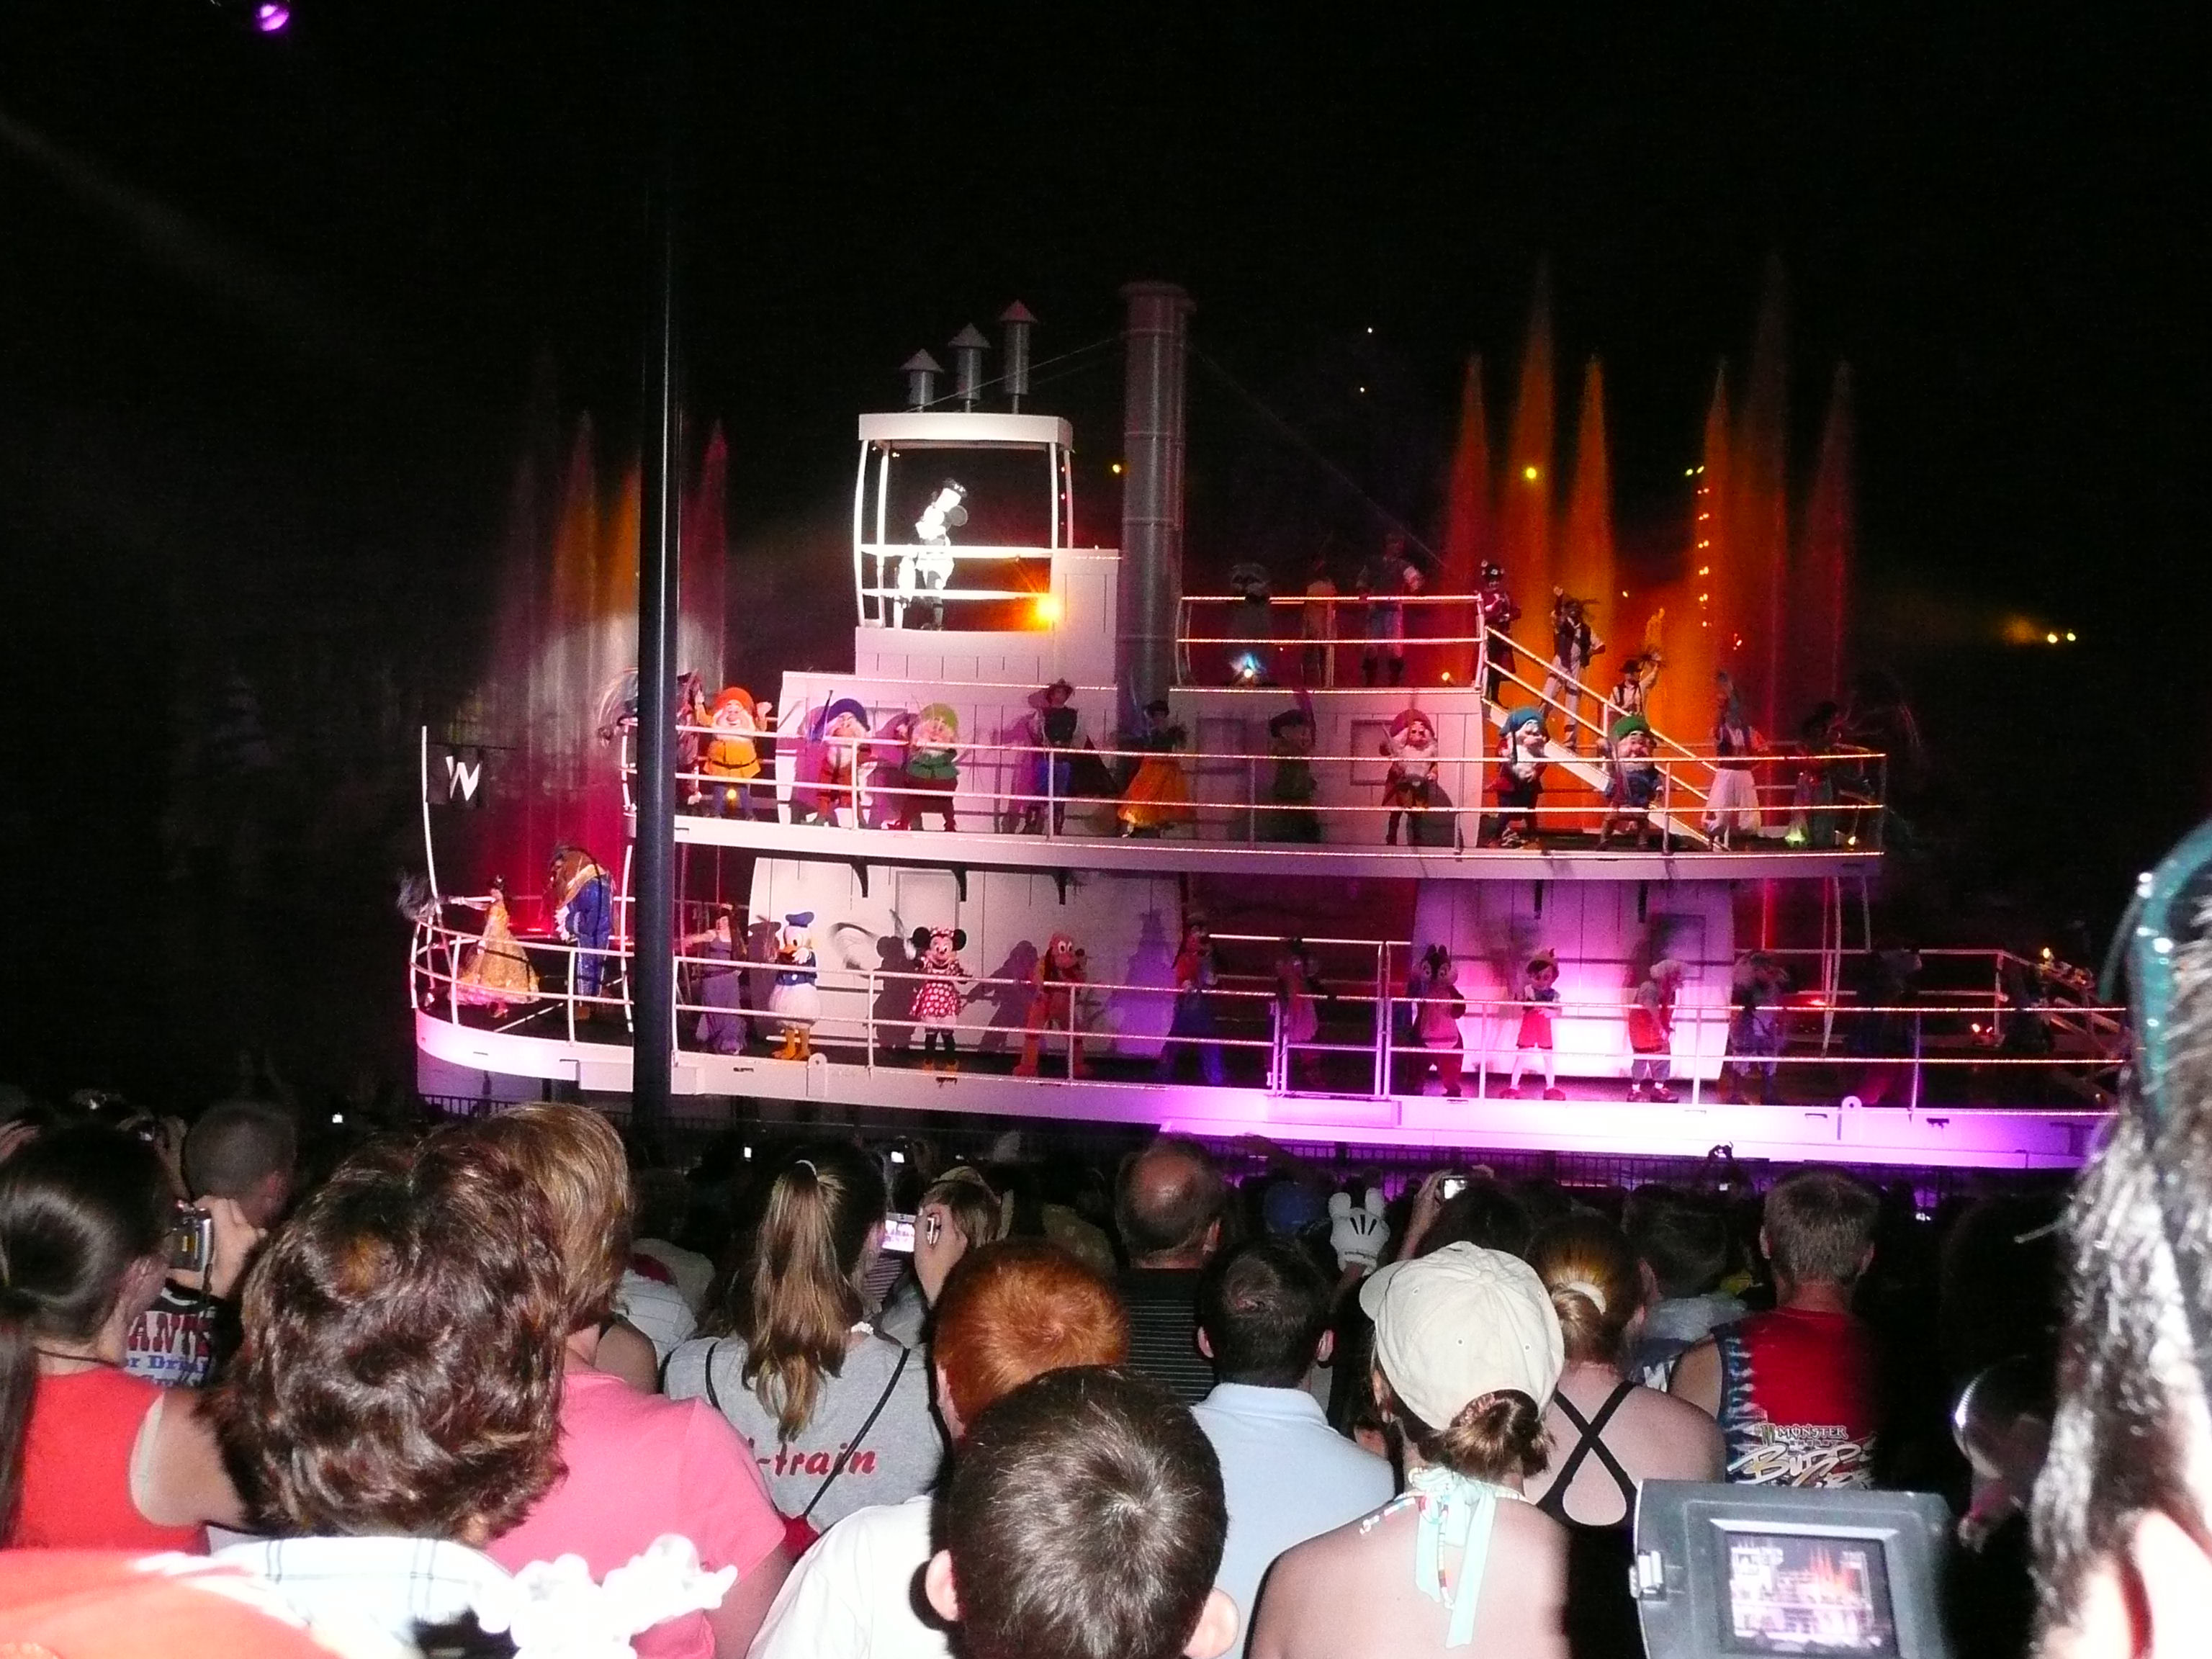 The finale of Fantasmic, the night time show at Disney's Hollywood Studios.